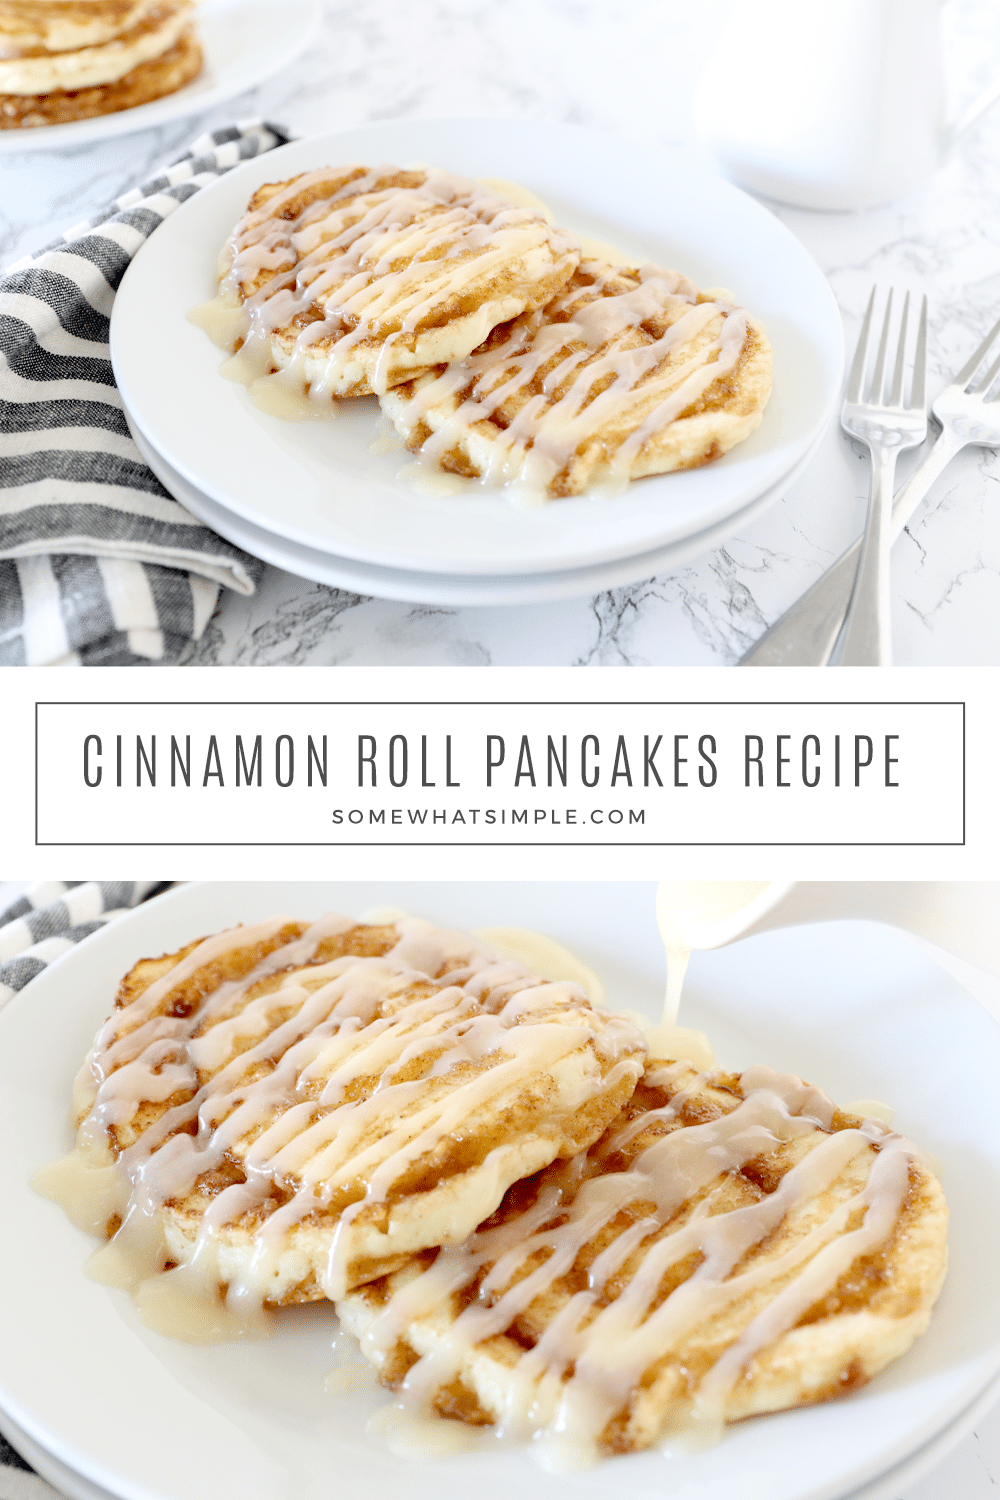 This cinnamon roll pancakes recipe with a cream cheese frosting is the perfect marriage of my two favorite breakfast foods. #food #breakfast via @somewhatsimple